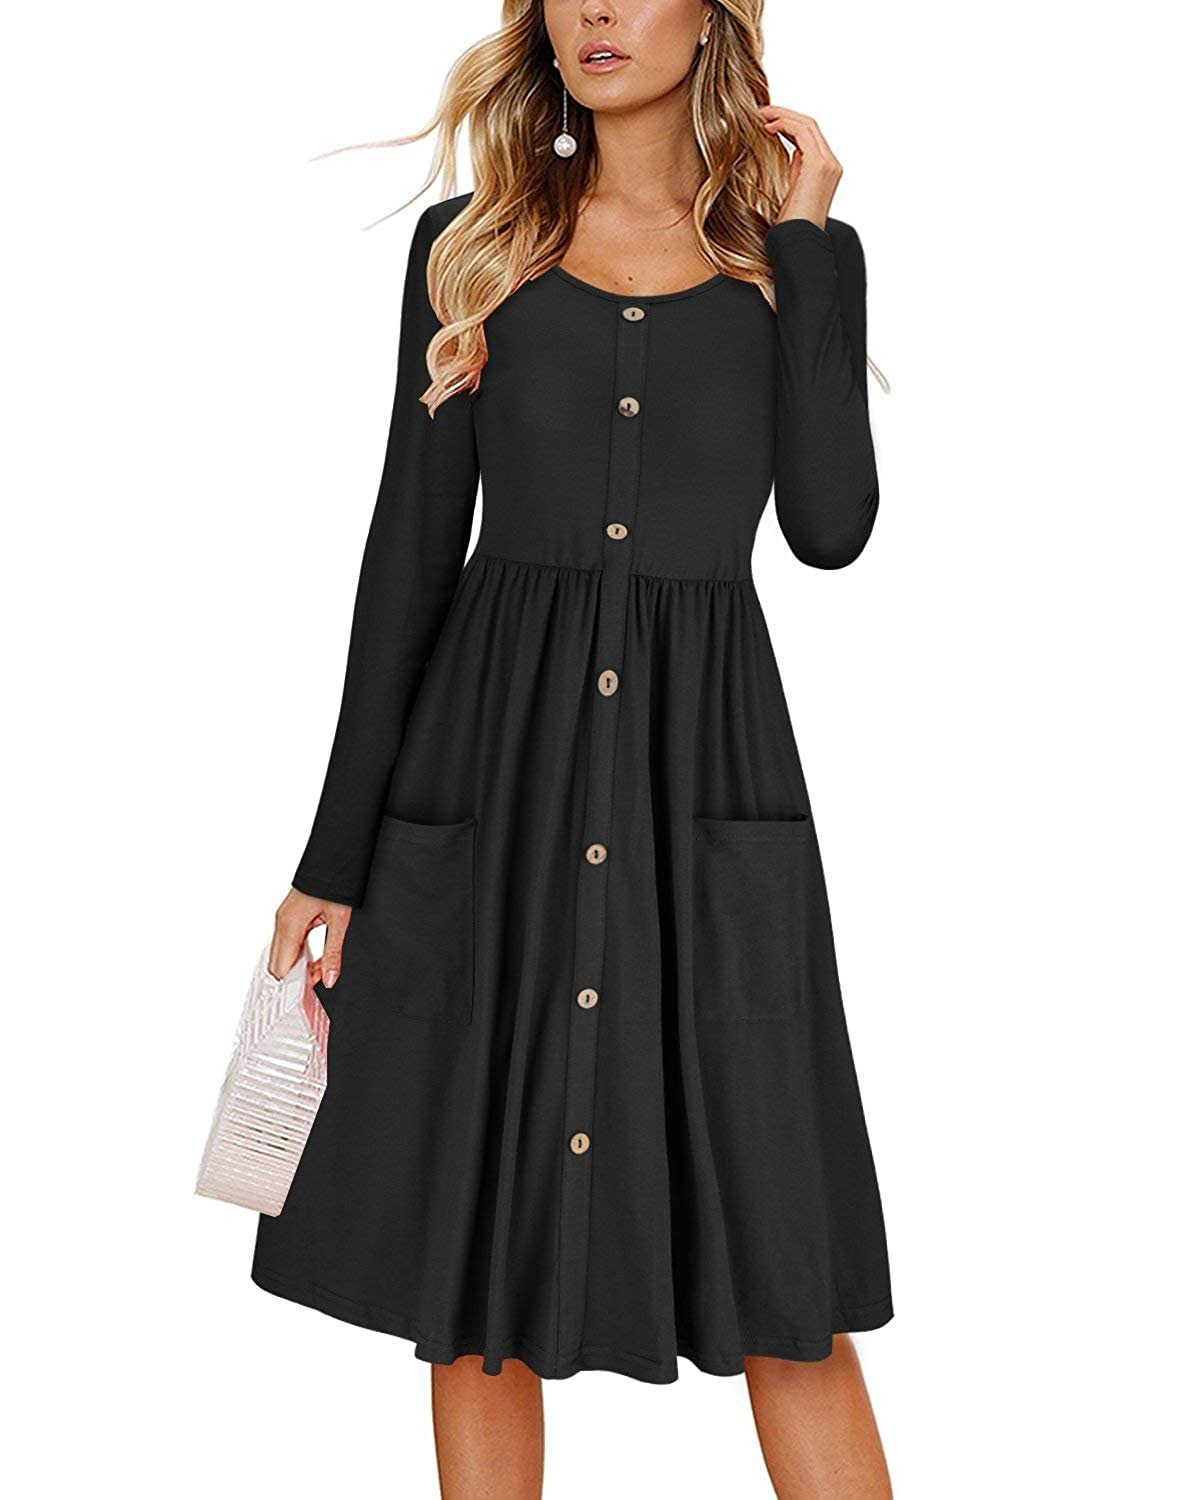 24714eef62e Haircloud Women s Button Down Dresses-Long Sleeve V Neck T Shirt Midi  Skater Dress with Pockets at Amazon Women s Clothing store